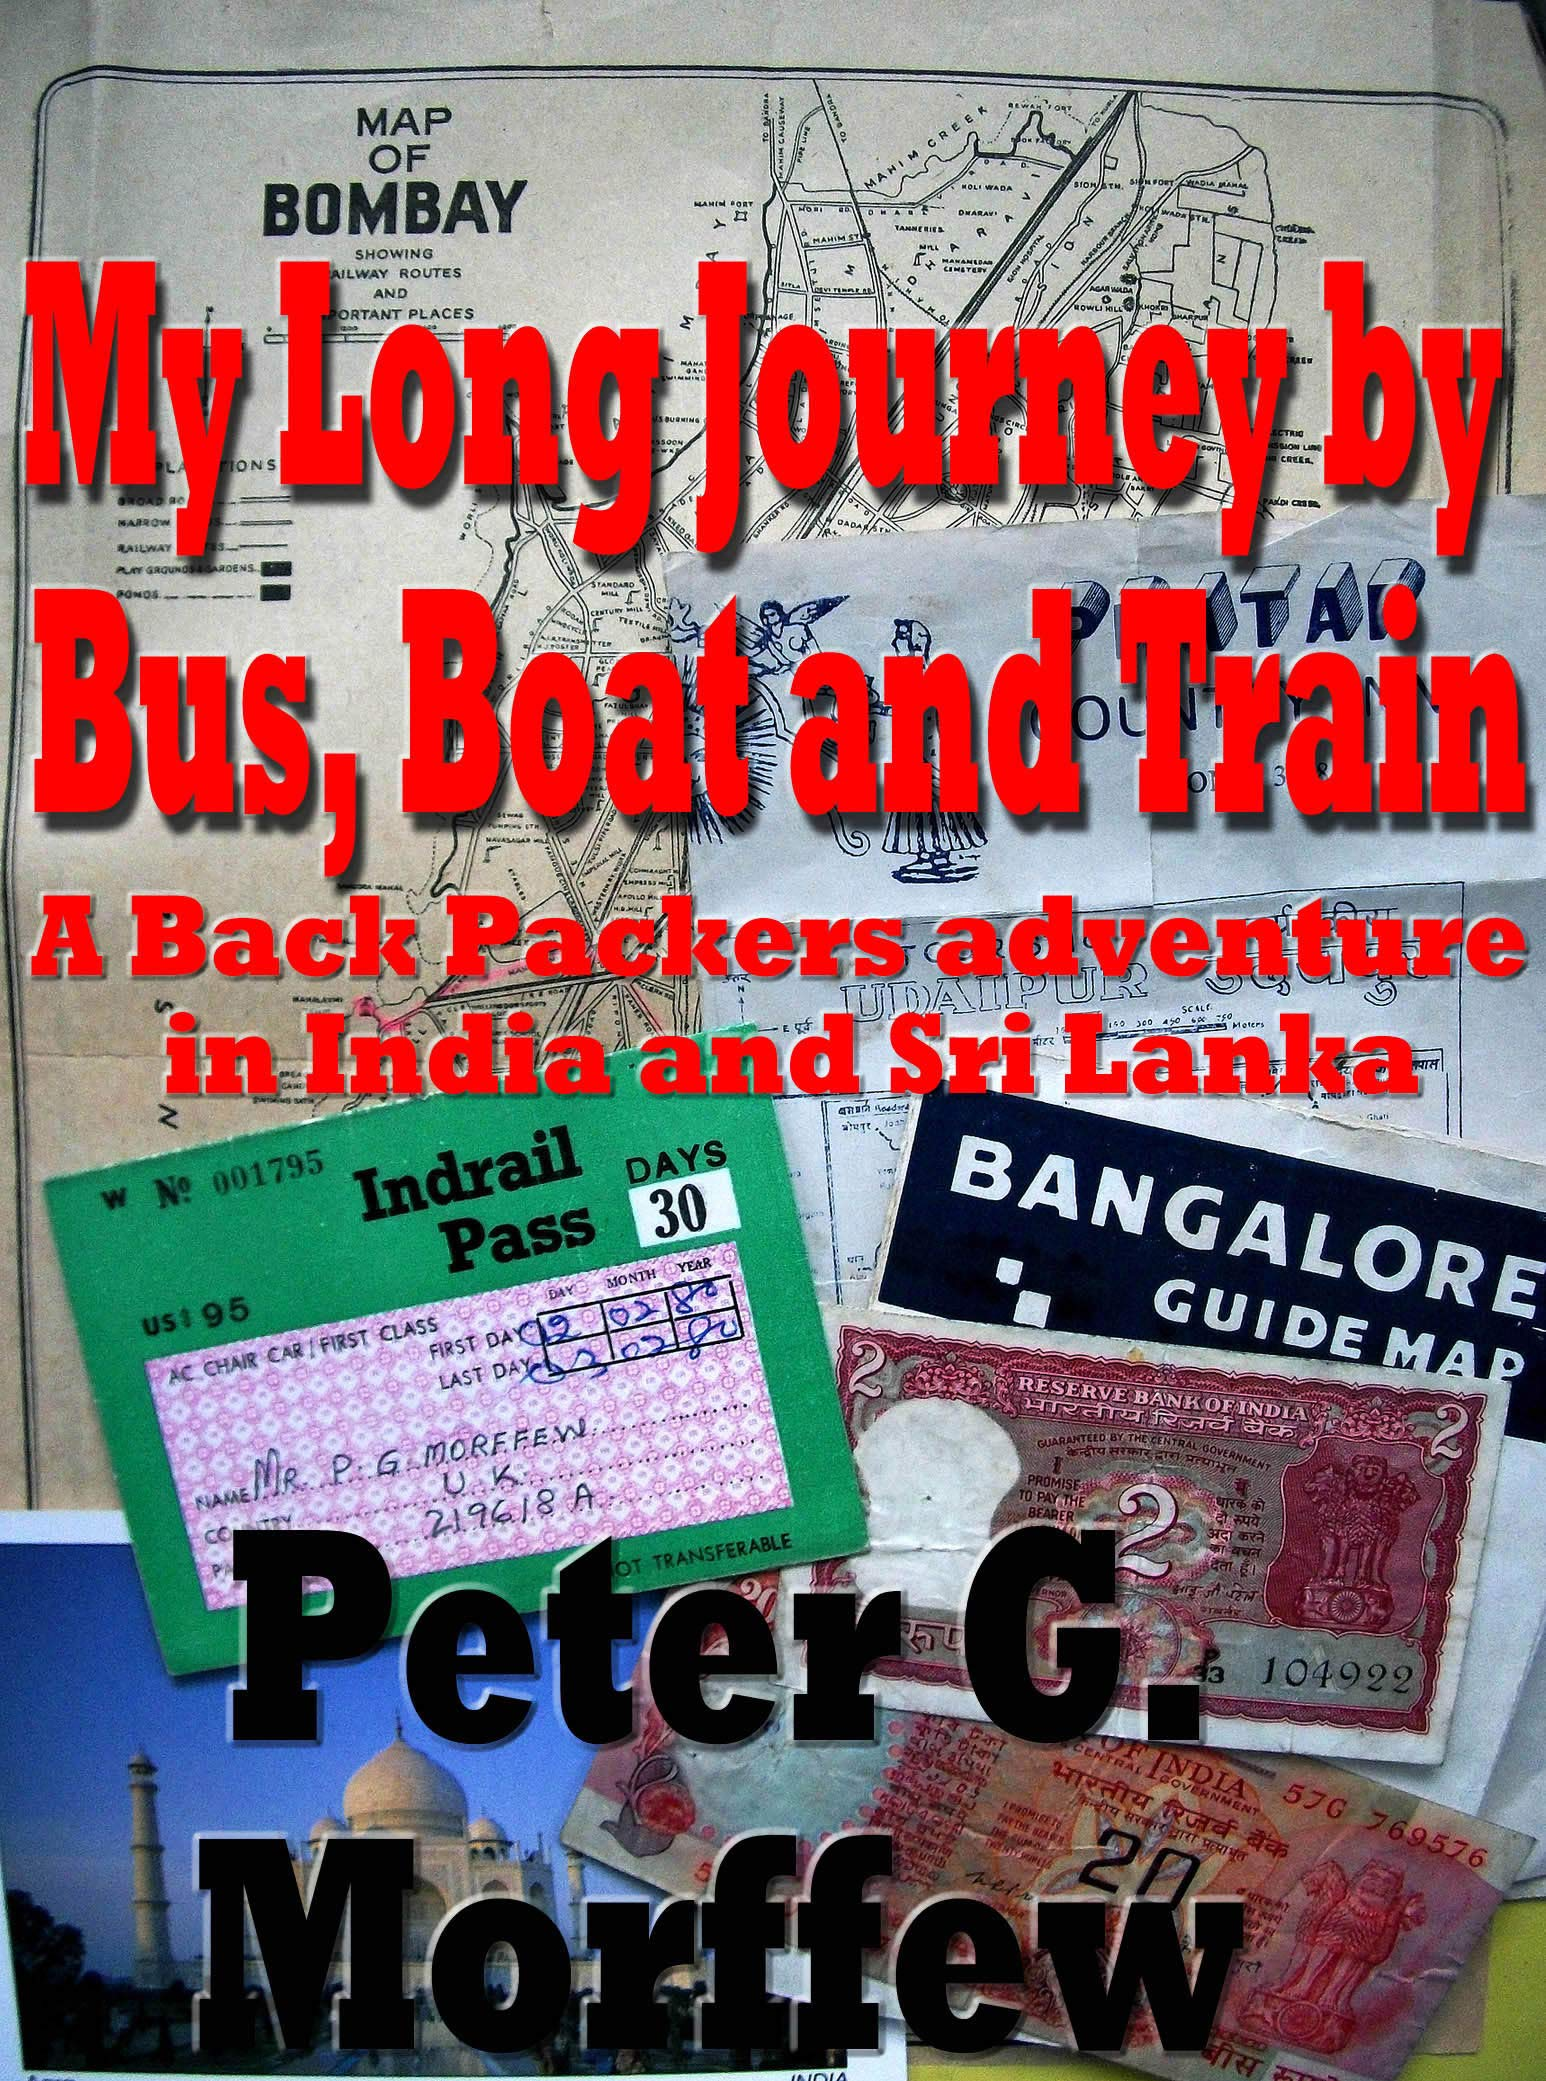 My Long Journey by Bus, Boat and Train.: A Backpackers adventure in India and Sri Lanka